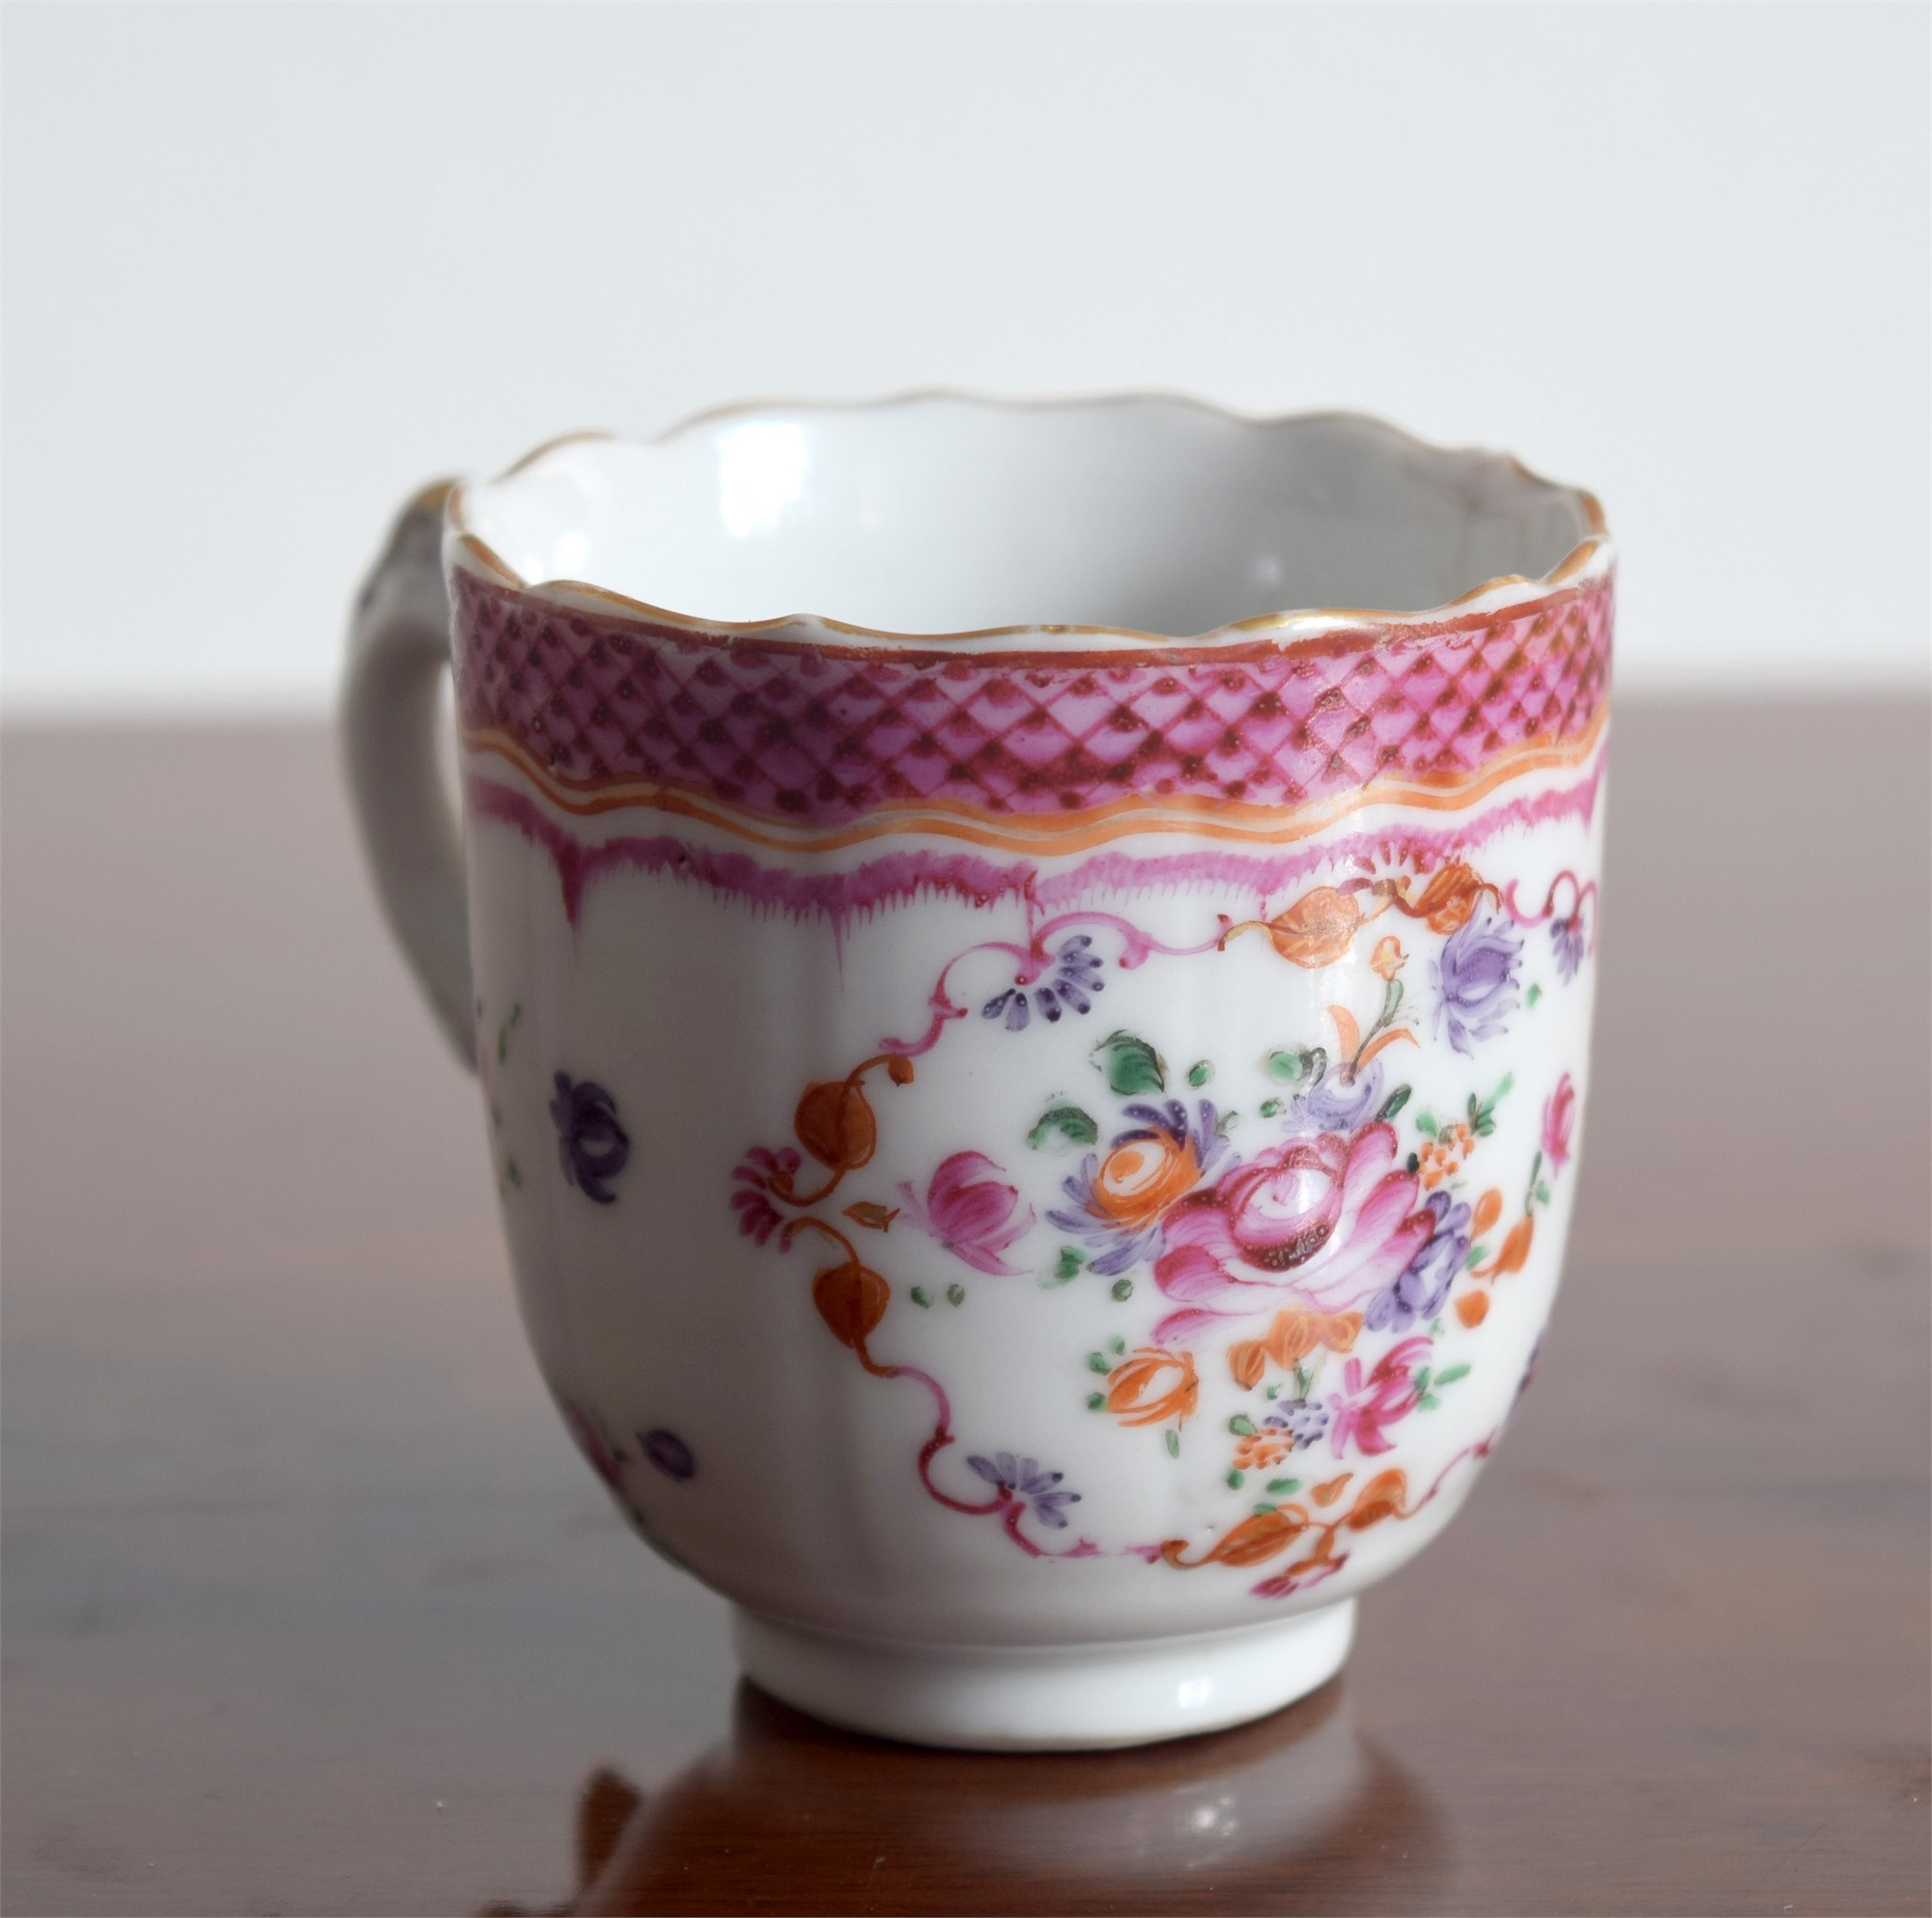 A FR COFFEECUP WITH CENTRAL FLOWER, SMALL PUCE FOLIAGE, BARBED RIM